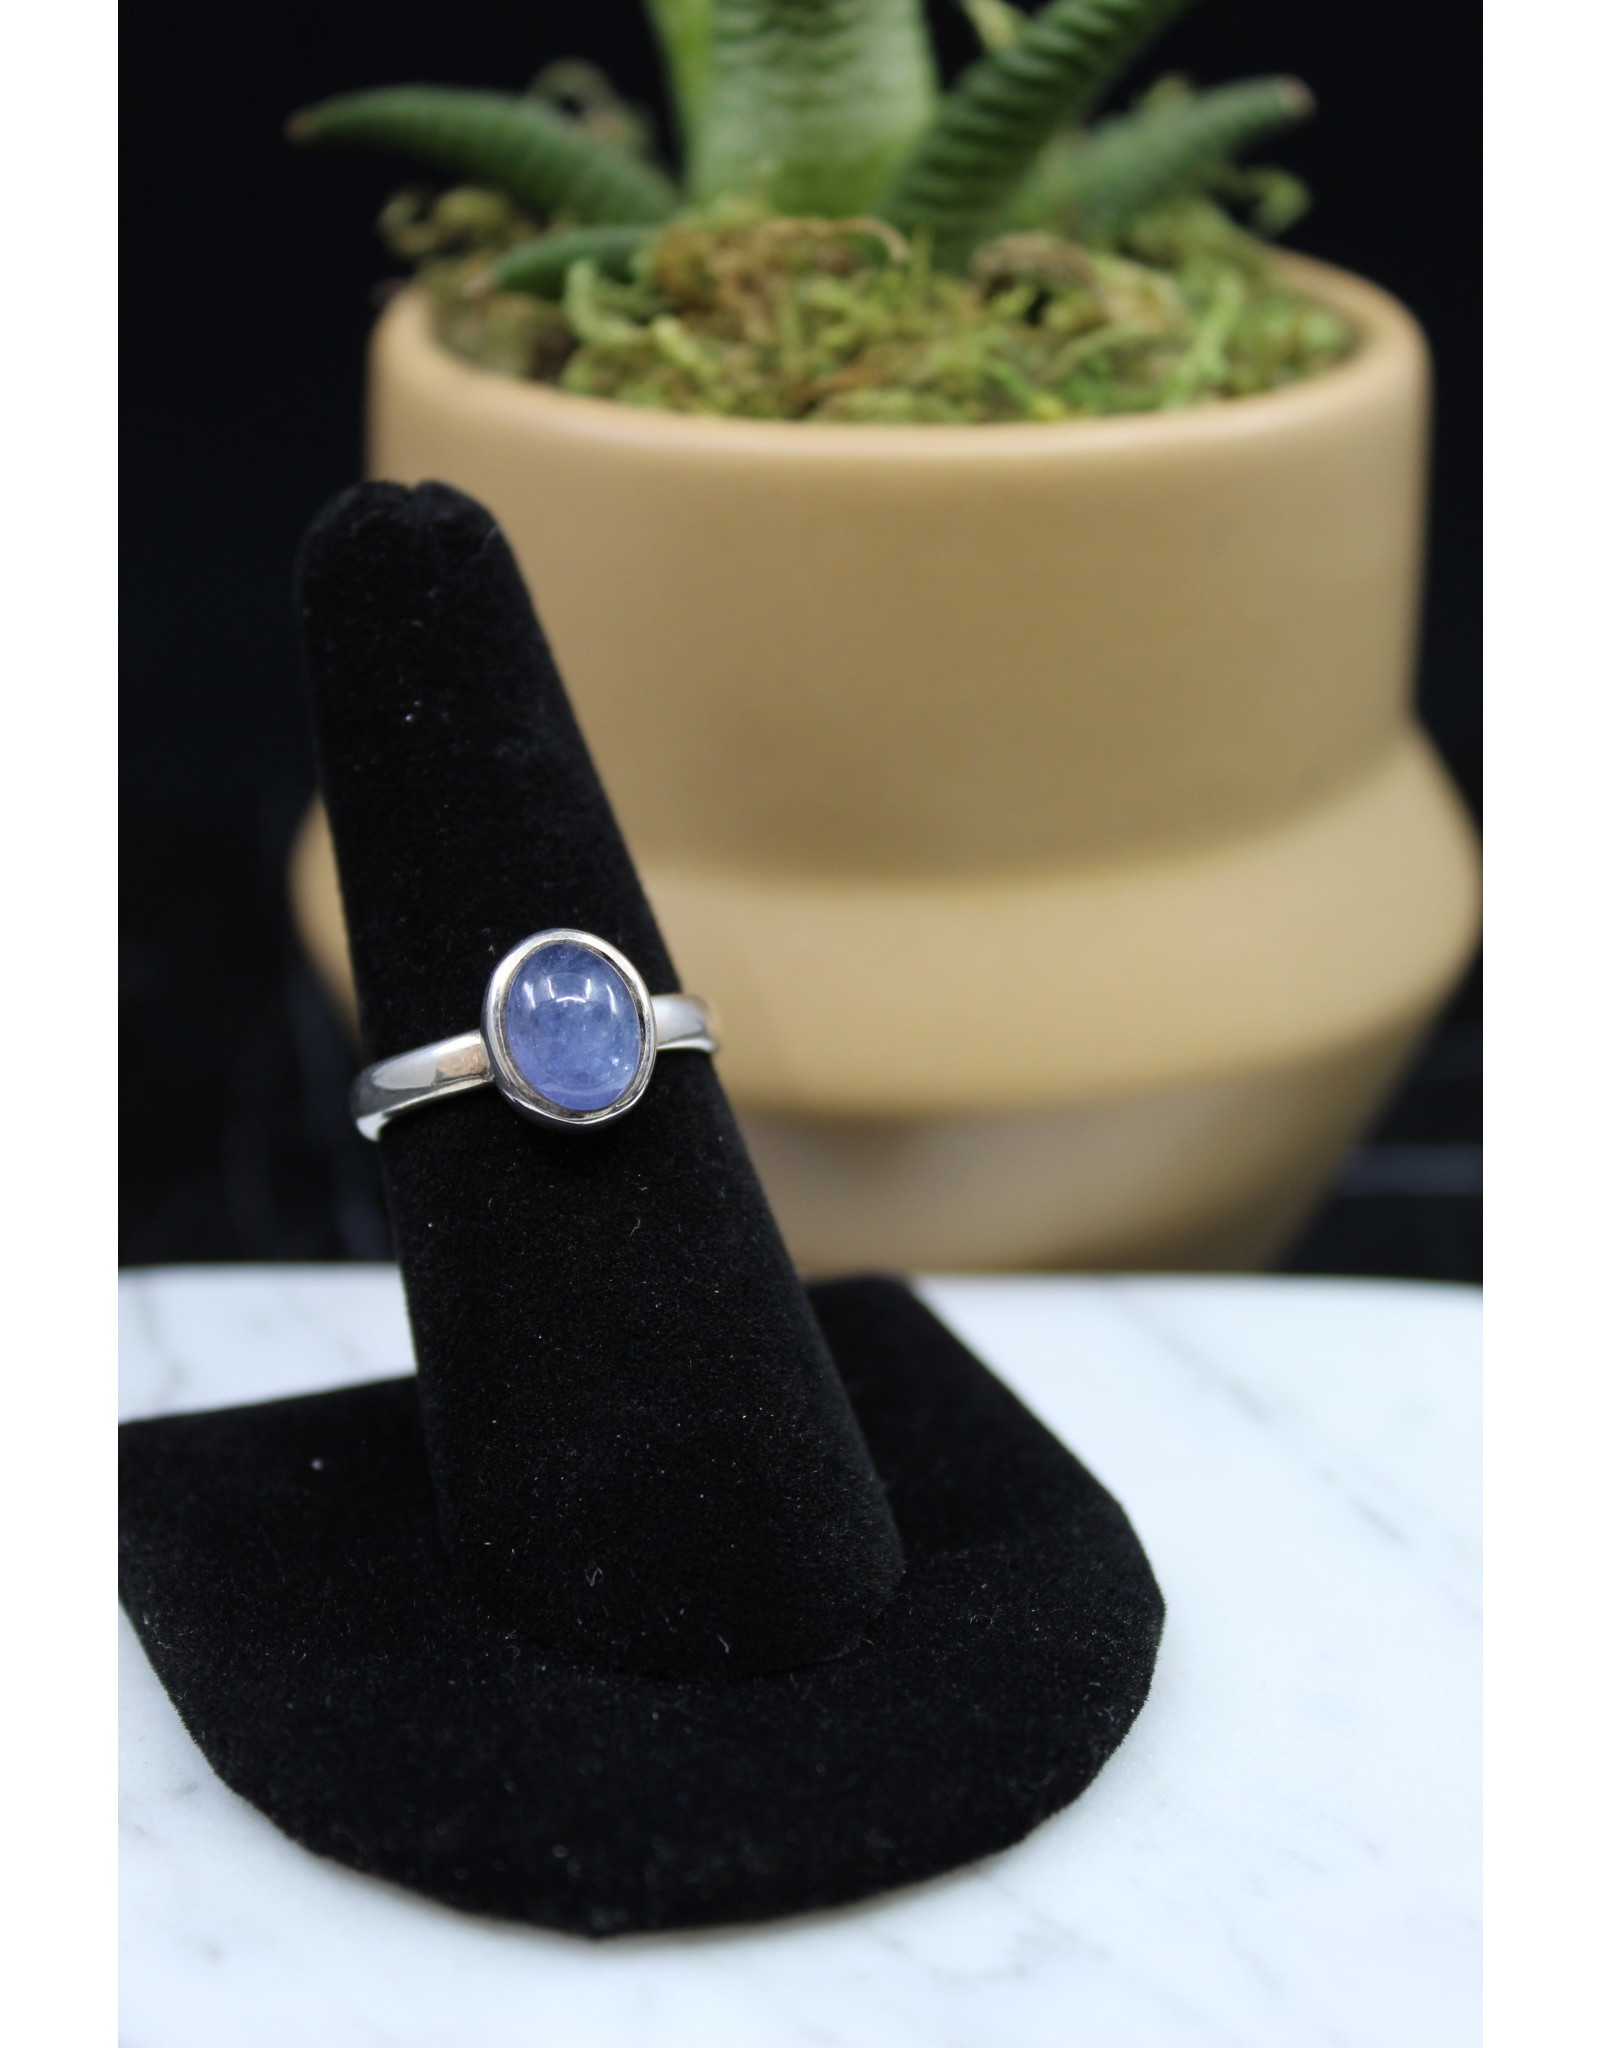 Blue Kyanite Ring (Oval) - Size 8